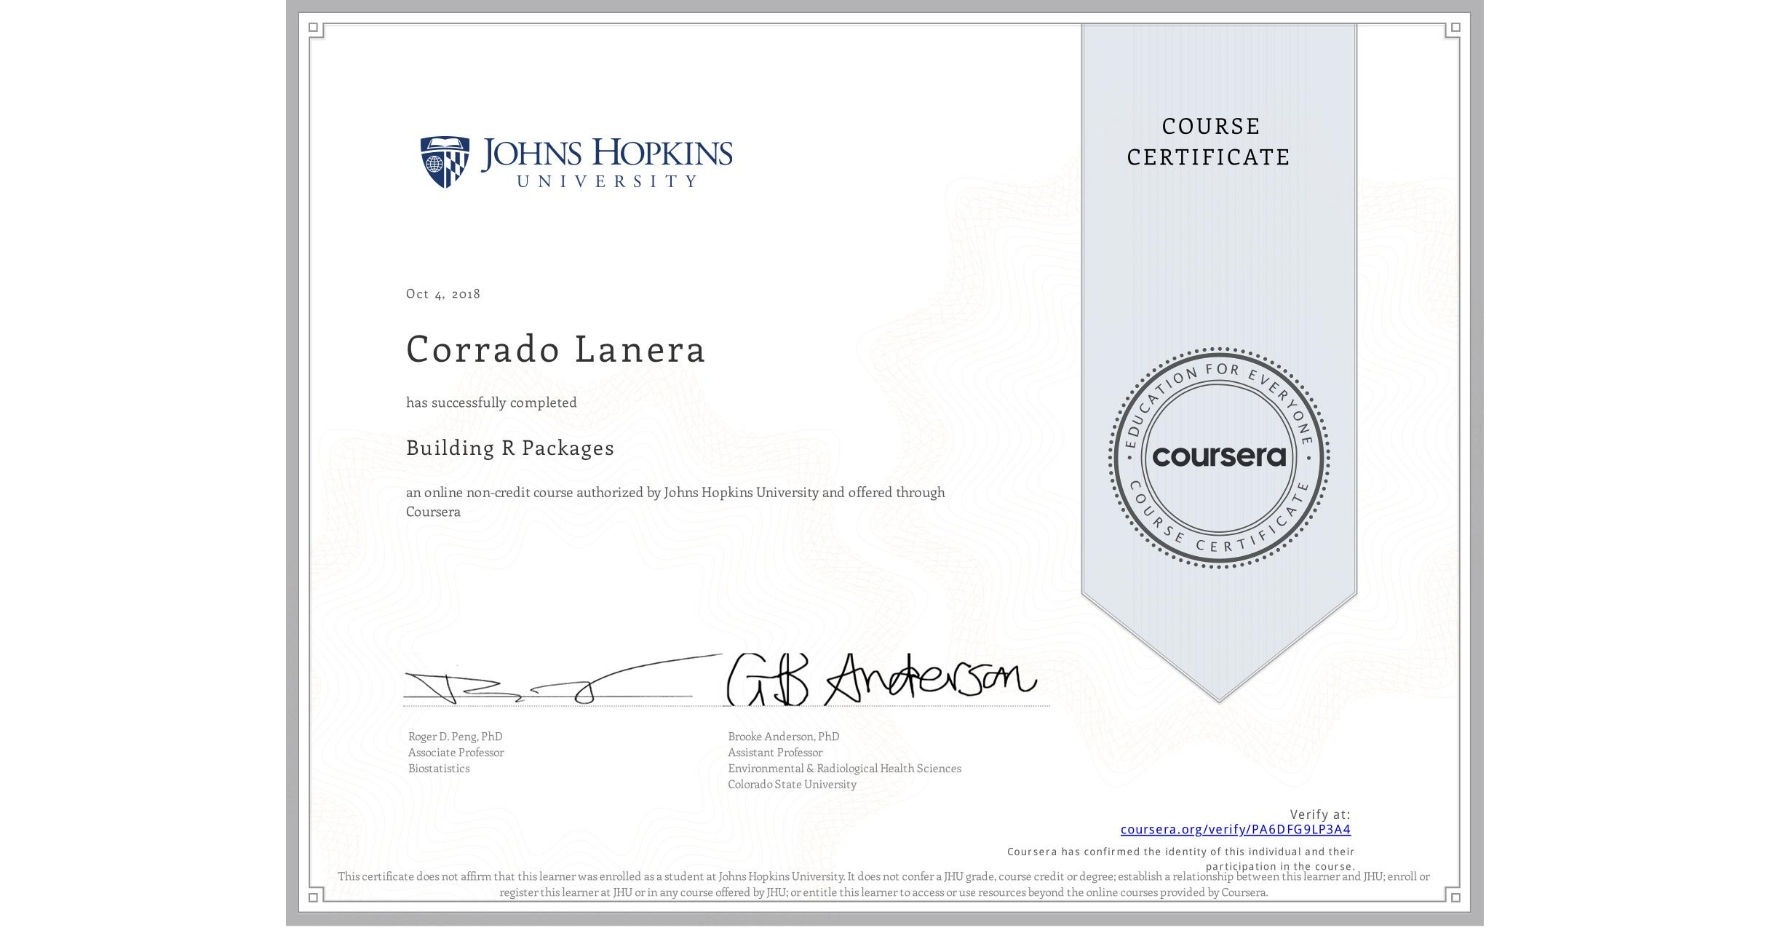 View certificate for Corrado Lanera, Building R Packages, an online non-credit course authorized by Johns Hopkins University and offered through Coursera